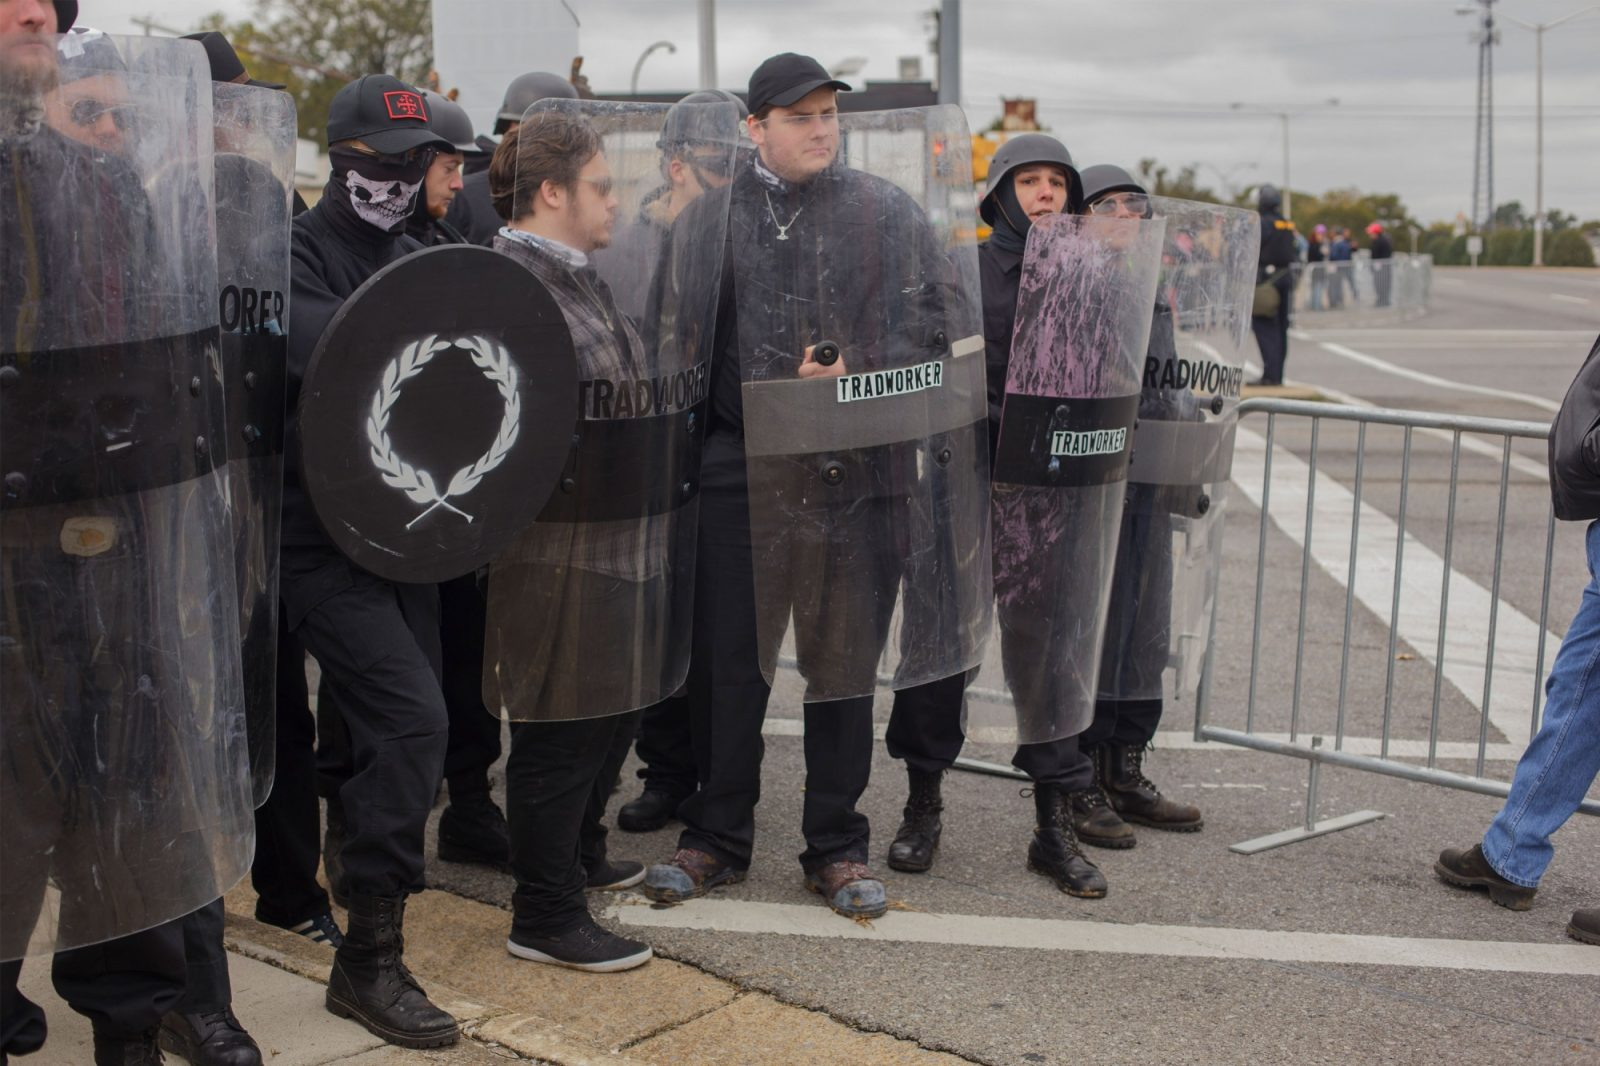 """White supremacists at a """"White Lives Matter"""" rally in Shelbyville, Tenn., on Oct. 28, 2017. Vasillios Pistolis identified himself in an online chat as the man holding the black shield."""